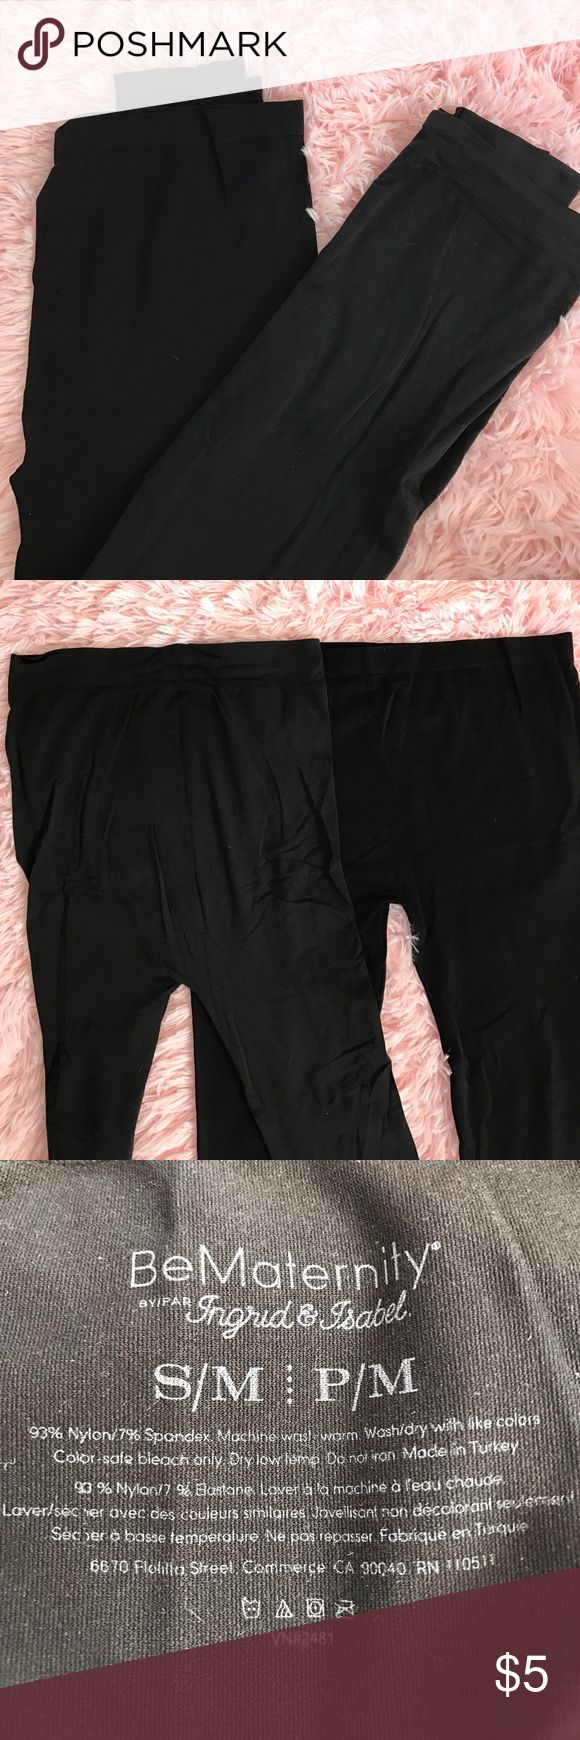 Maternity Leggings Bundle So I tried to show in the picture but one of the leggings doesn't go as high on the belly as the other (it's more for the beginner bump) • The other one covers the whole belly • both SUPER comfy • Slightly different shades of black Pants Leggings